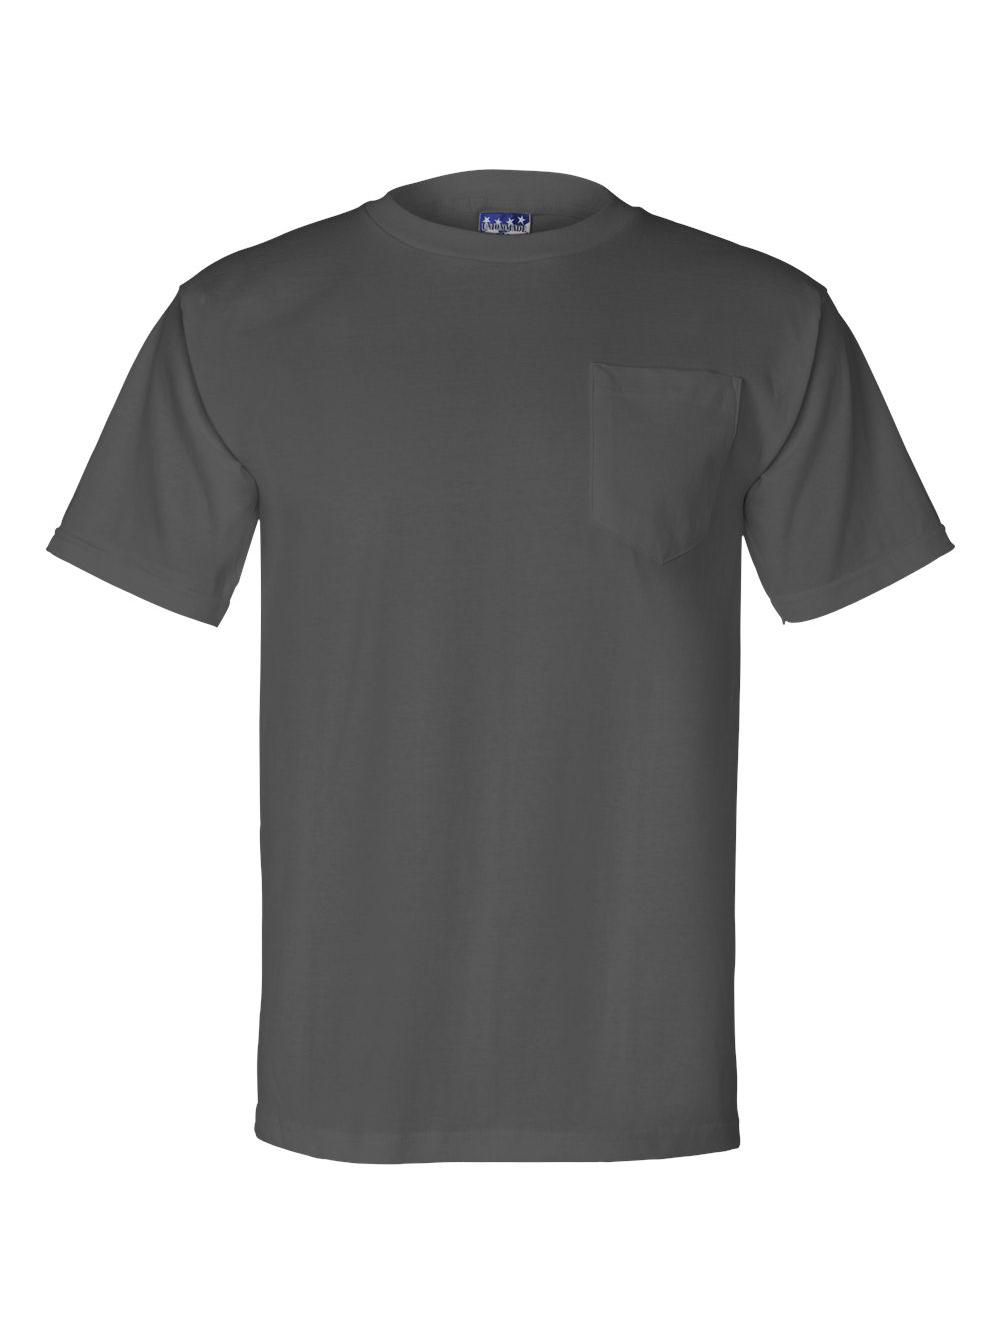 Bayside-Union-Made-Short-Sleeve-T-Shirt-with-a-Pocket-3015 thumbnail 9